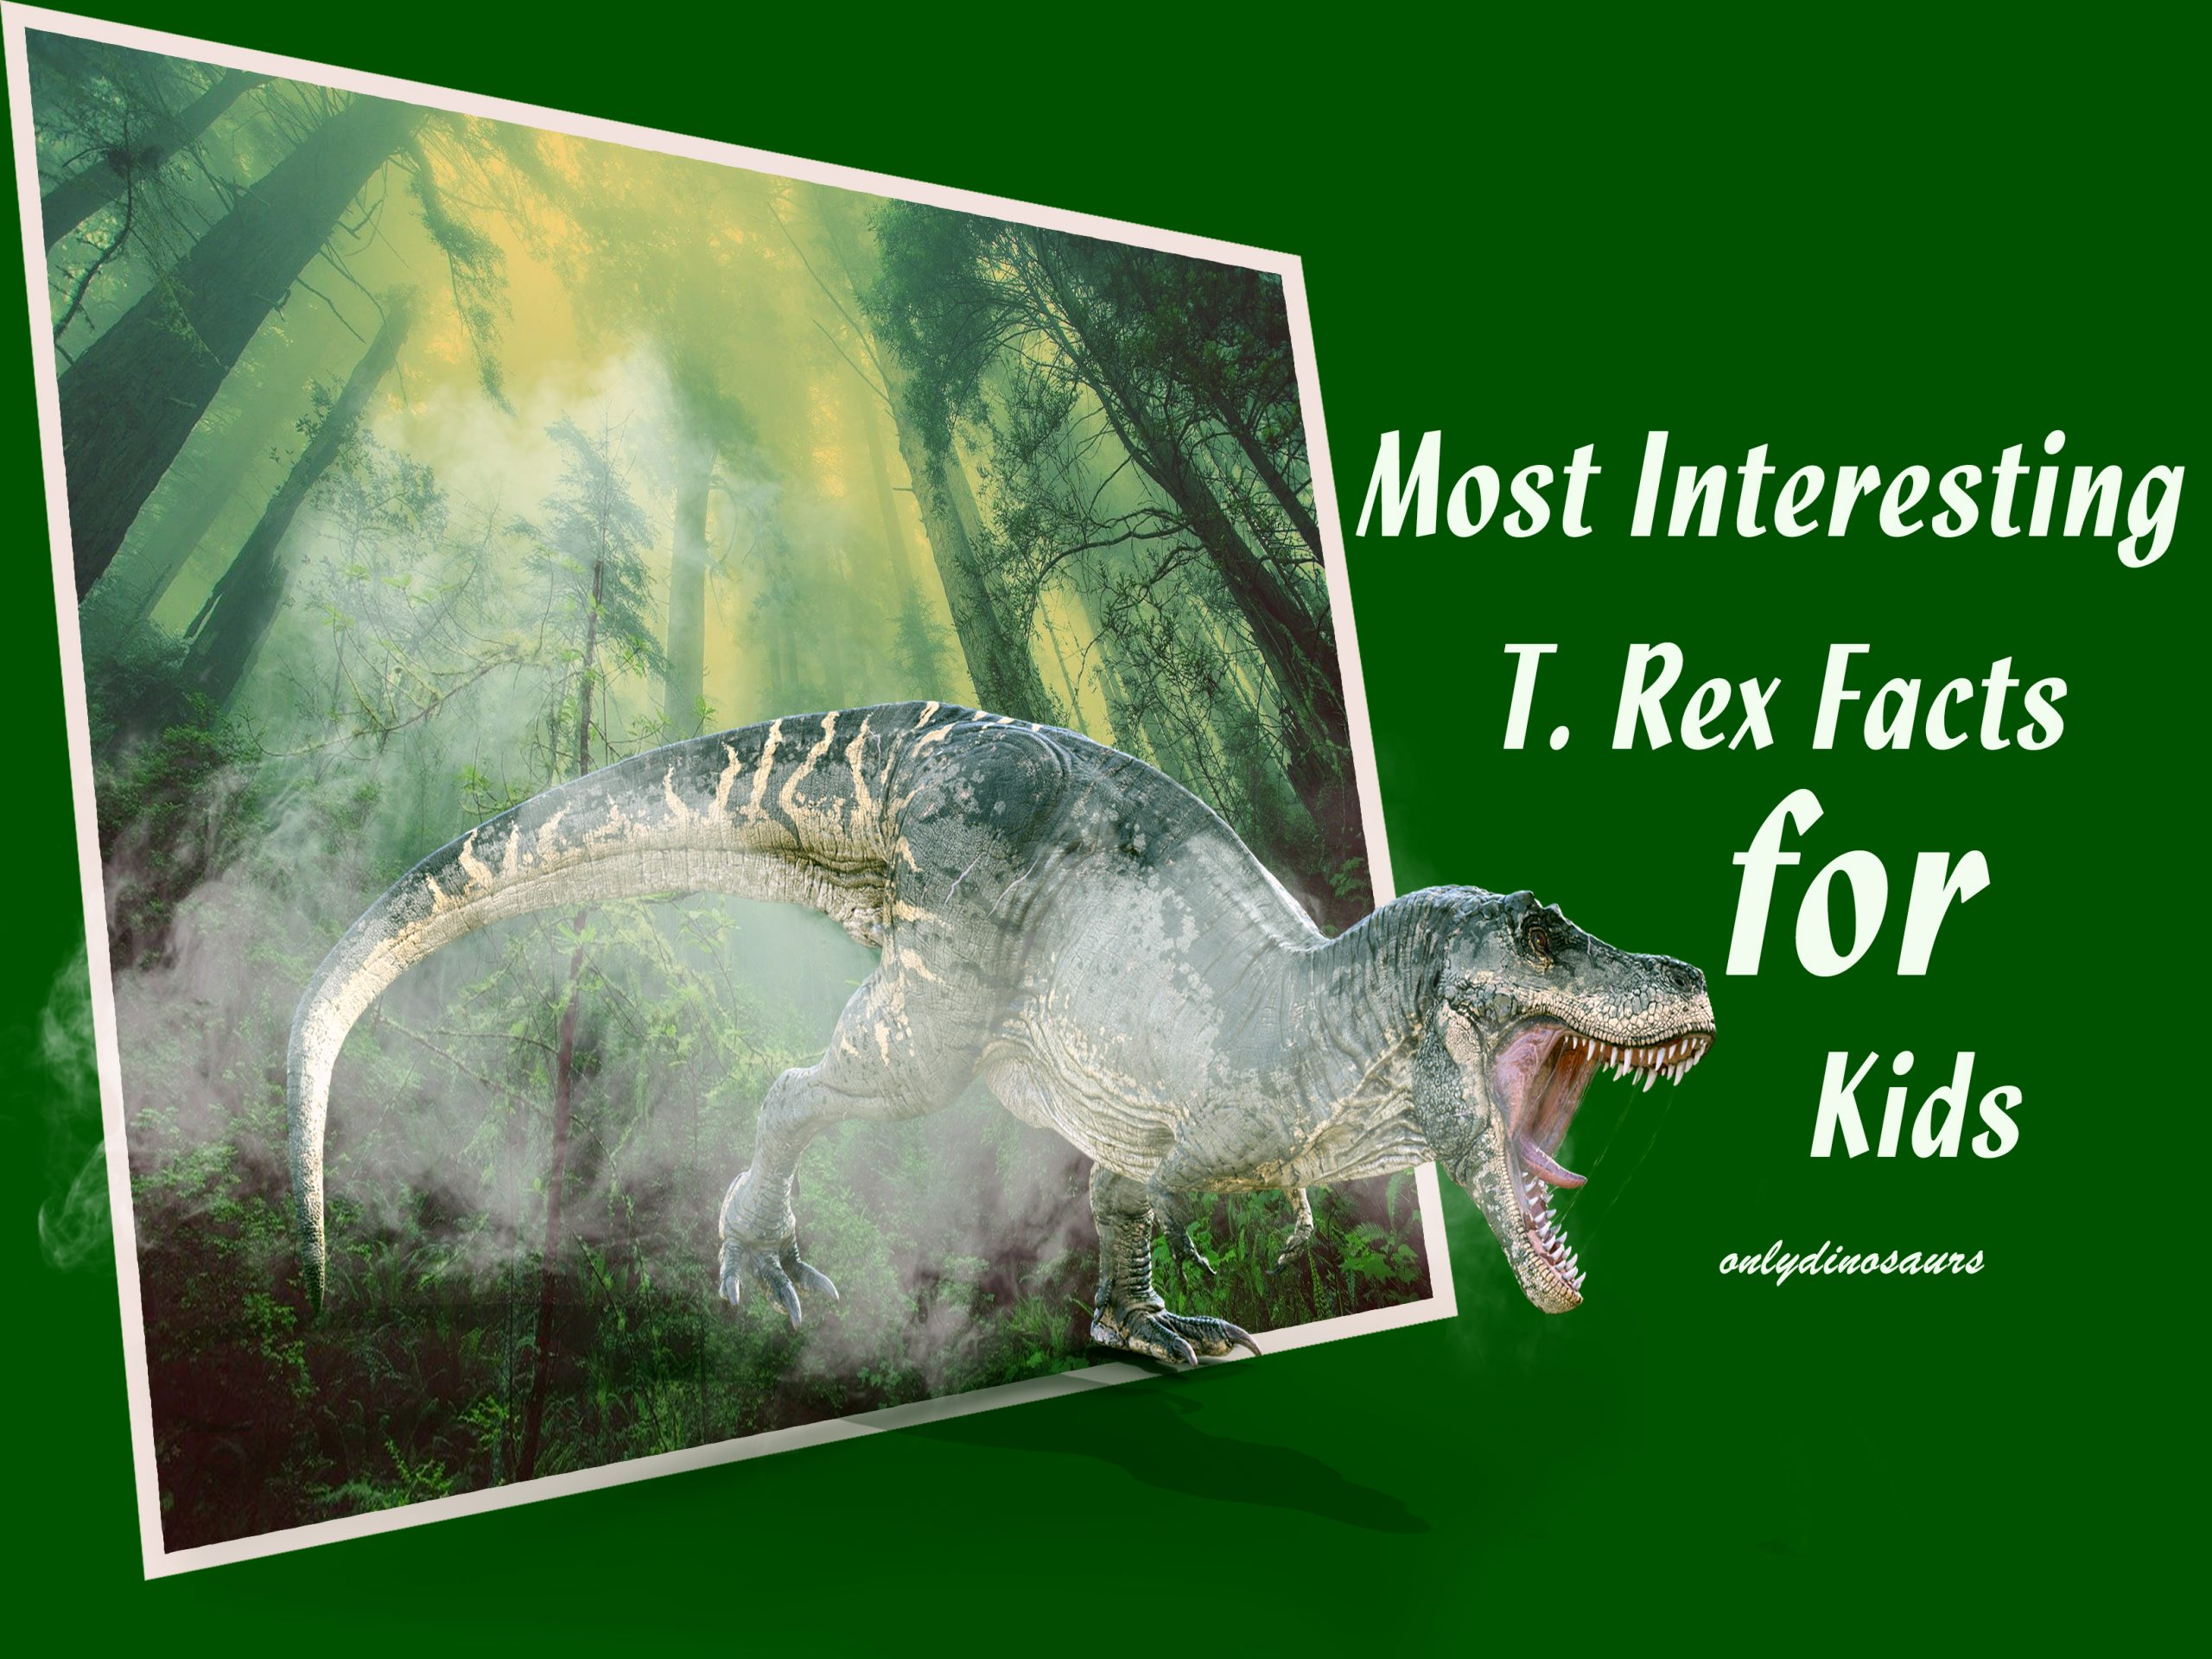 Most Interesting T. Rex Facts for Kids